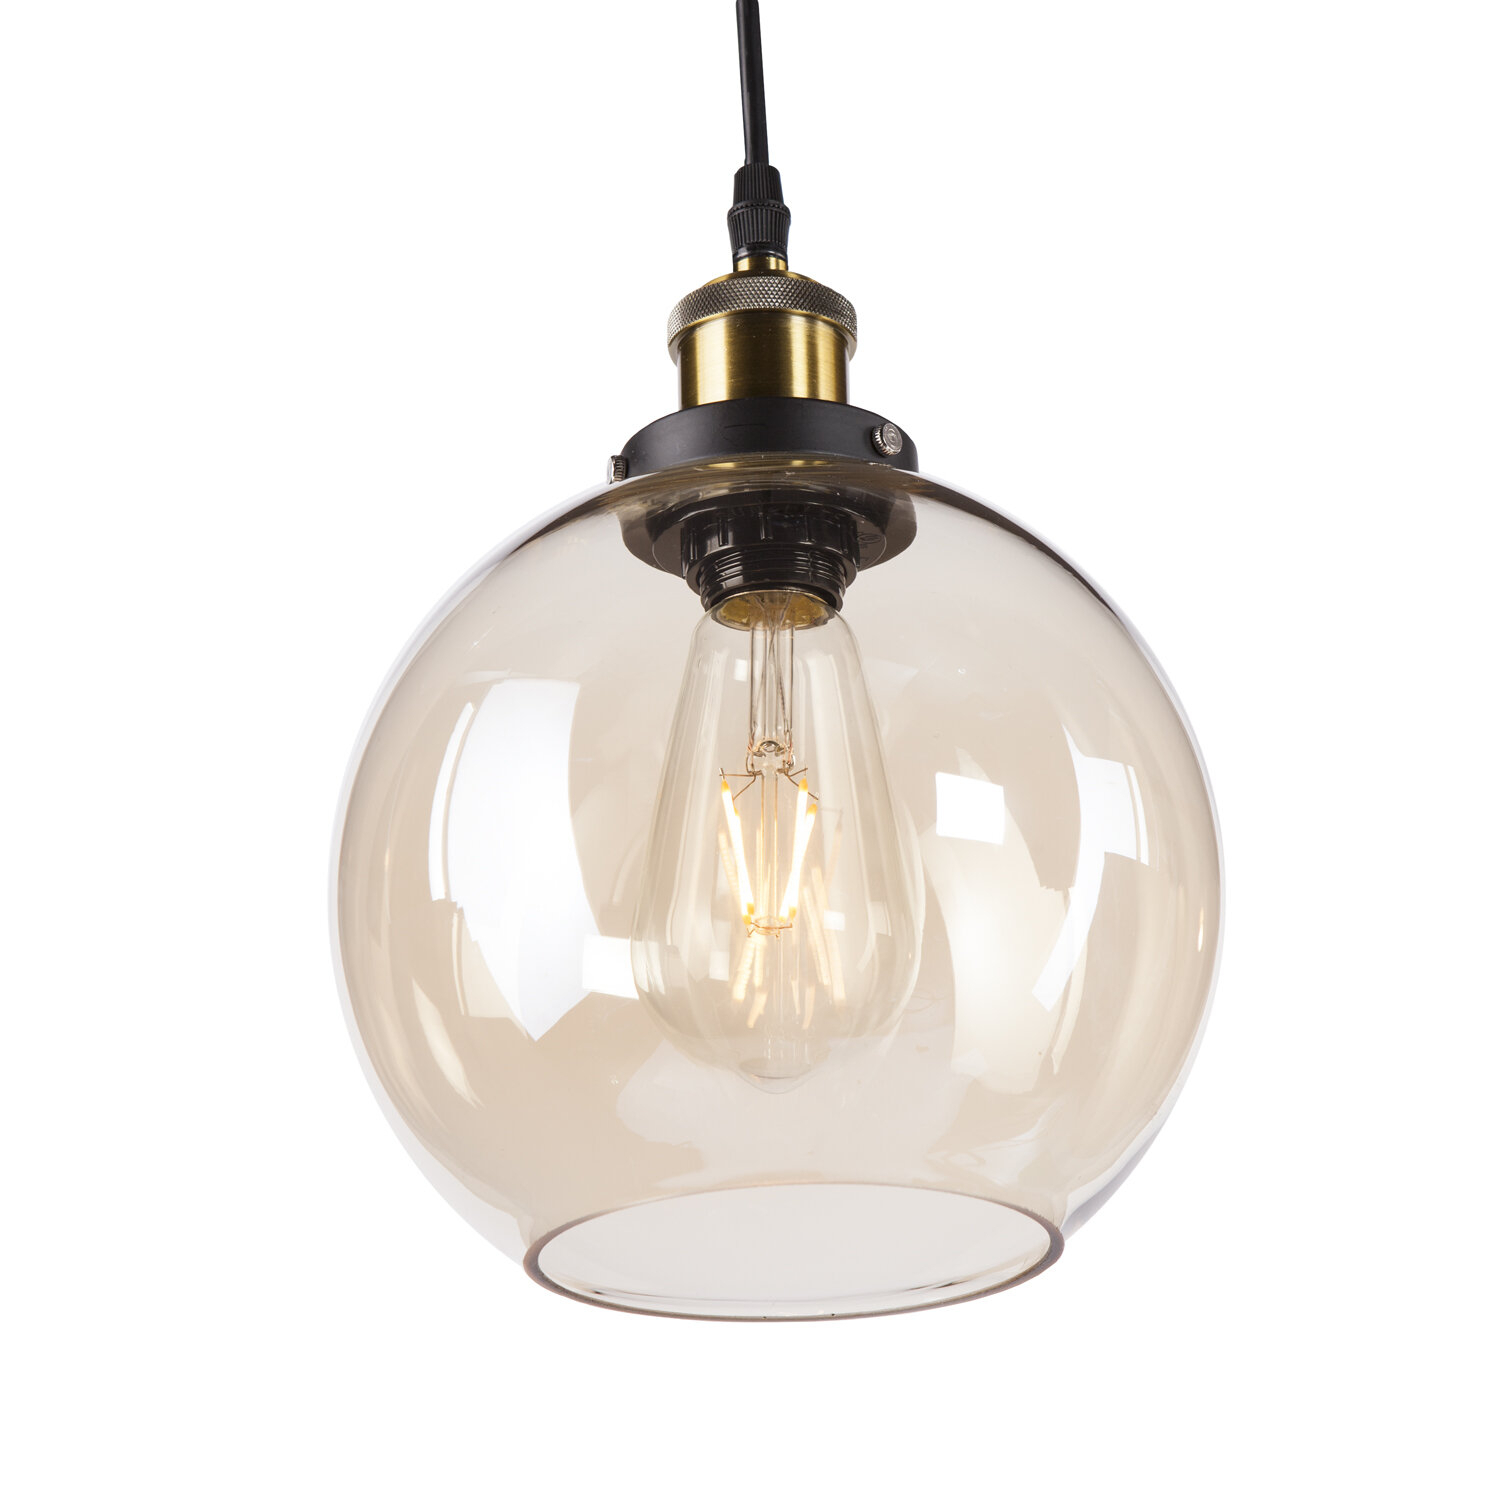 Etienne 1 Light Globe Pendant Pertaining To Betsy 1 Light Single Globe Pendants (View 19 of 30)